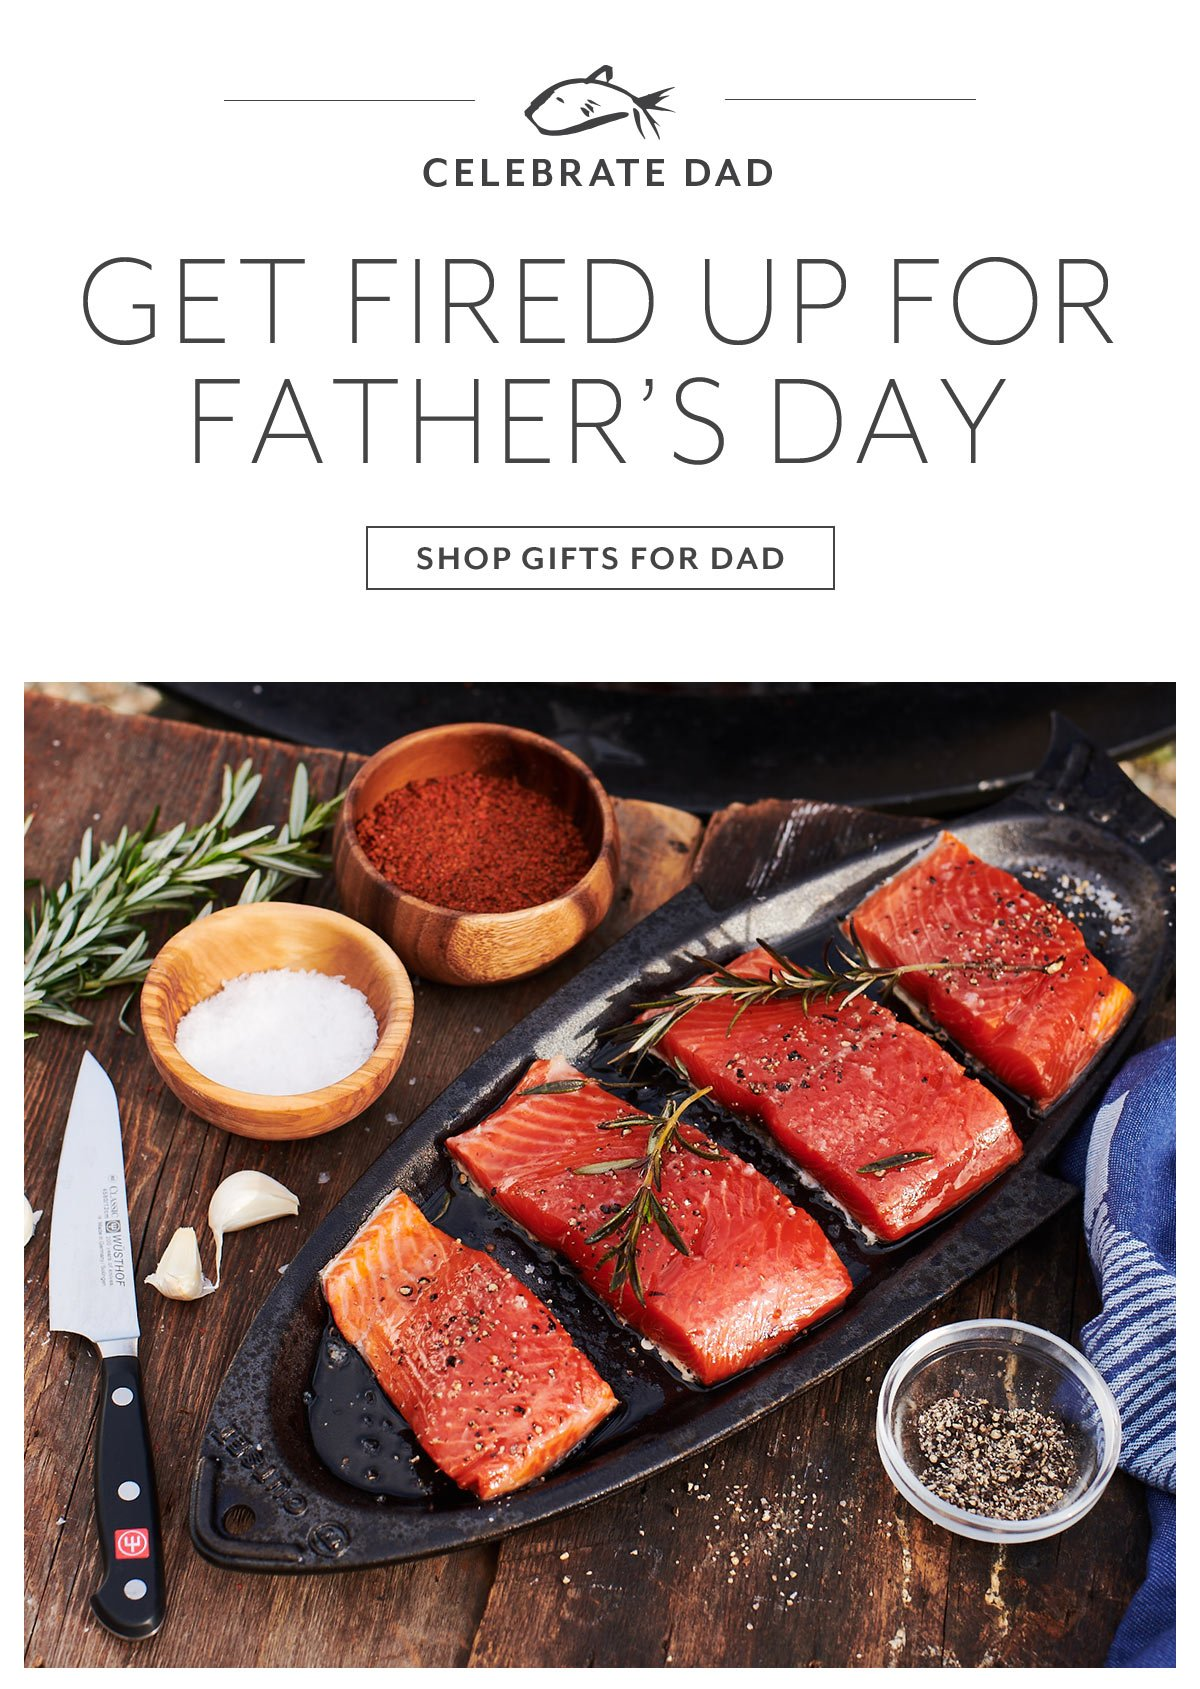 Get Fired Up for Father's Day